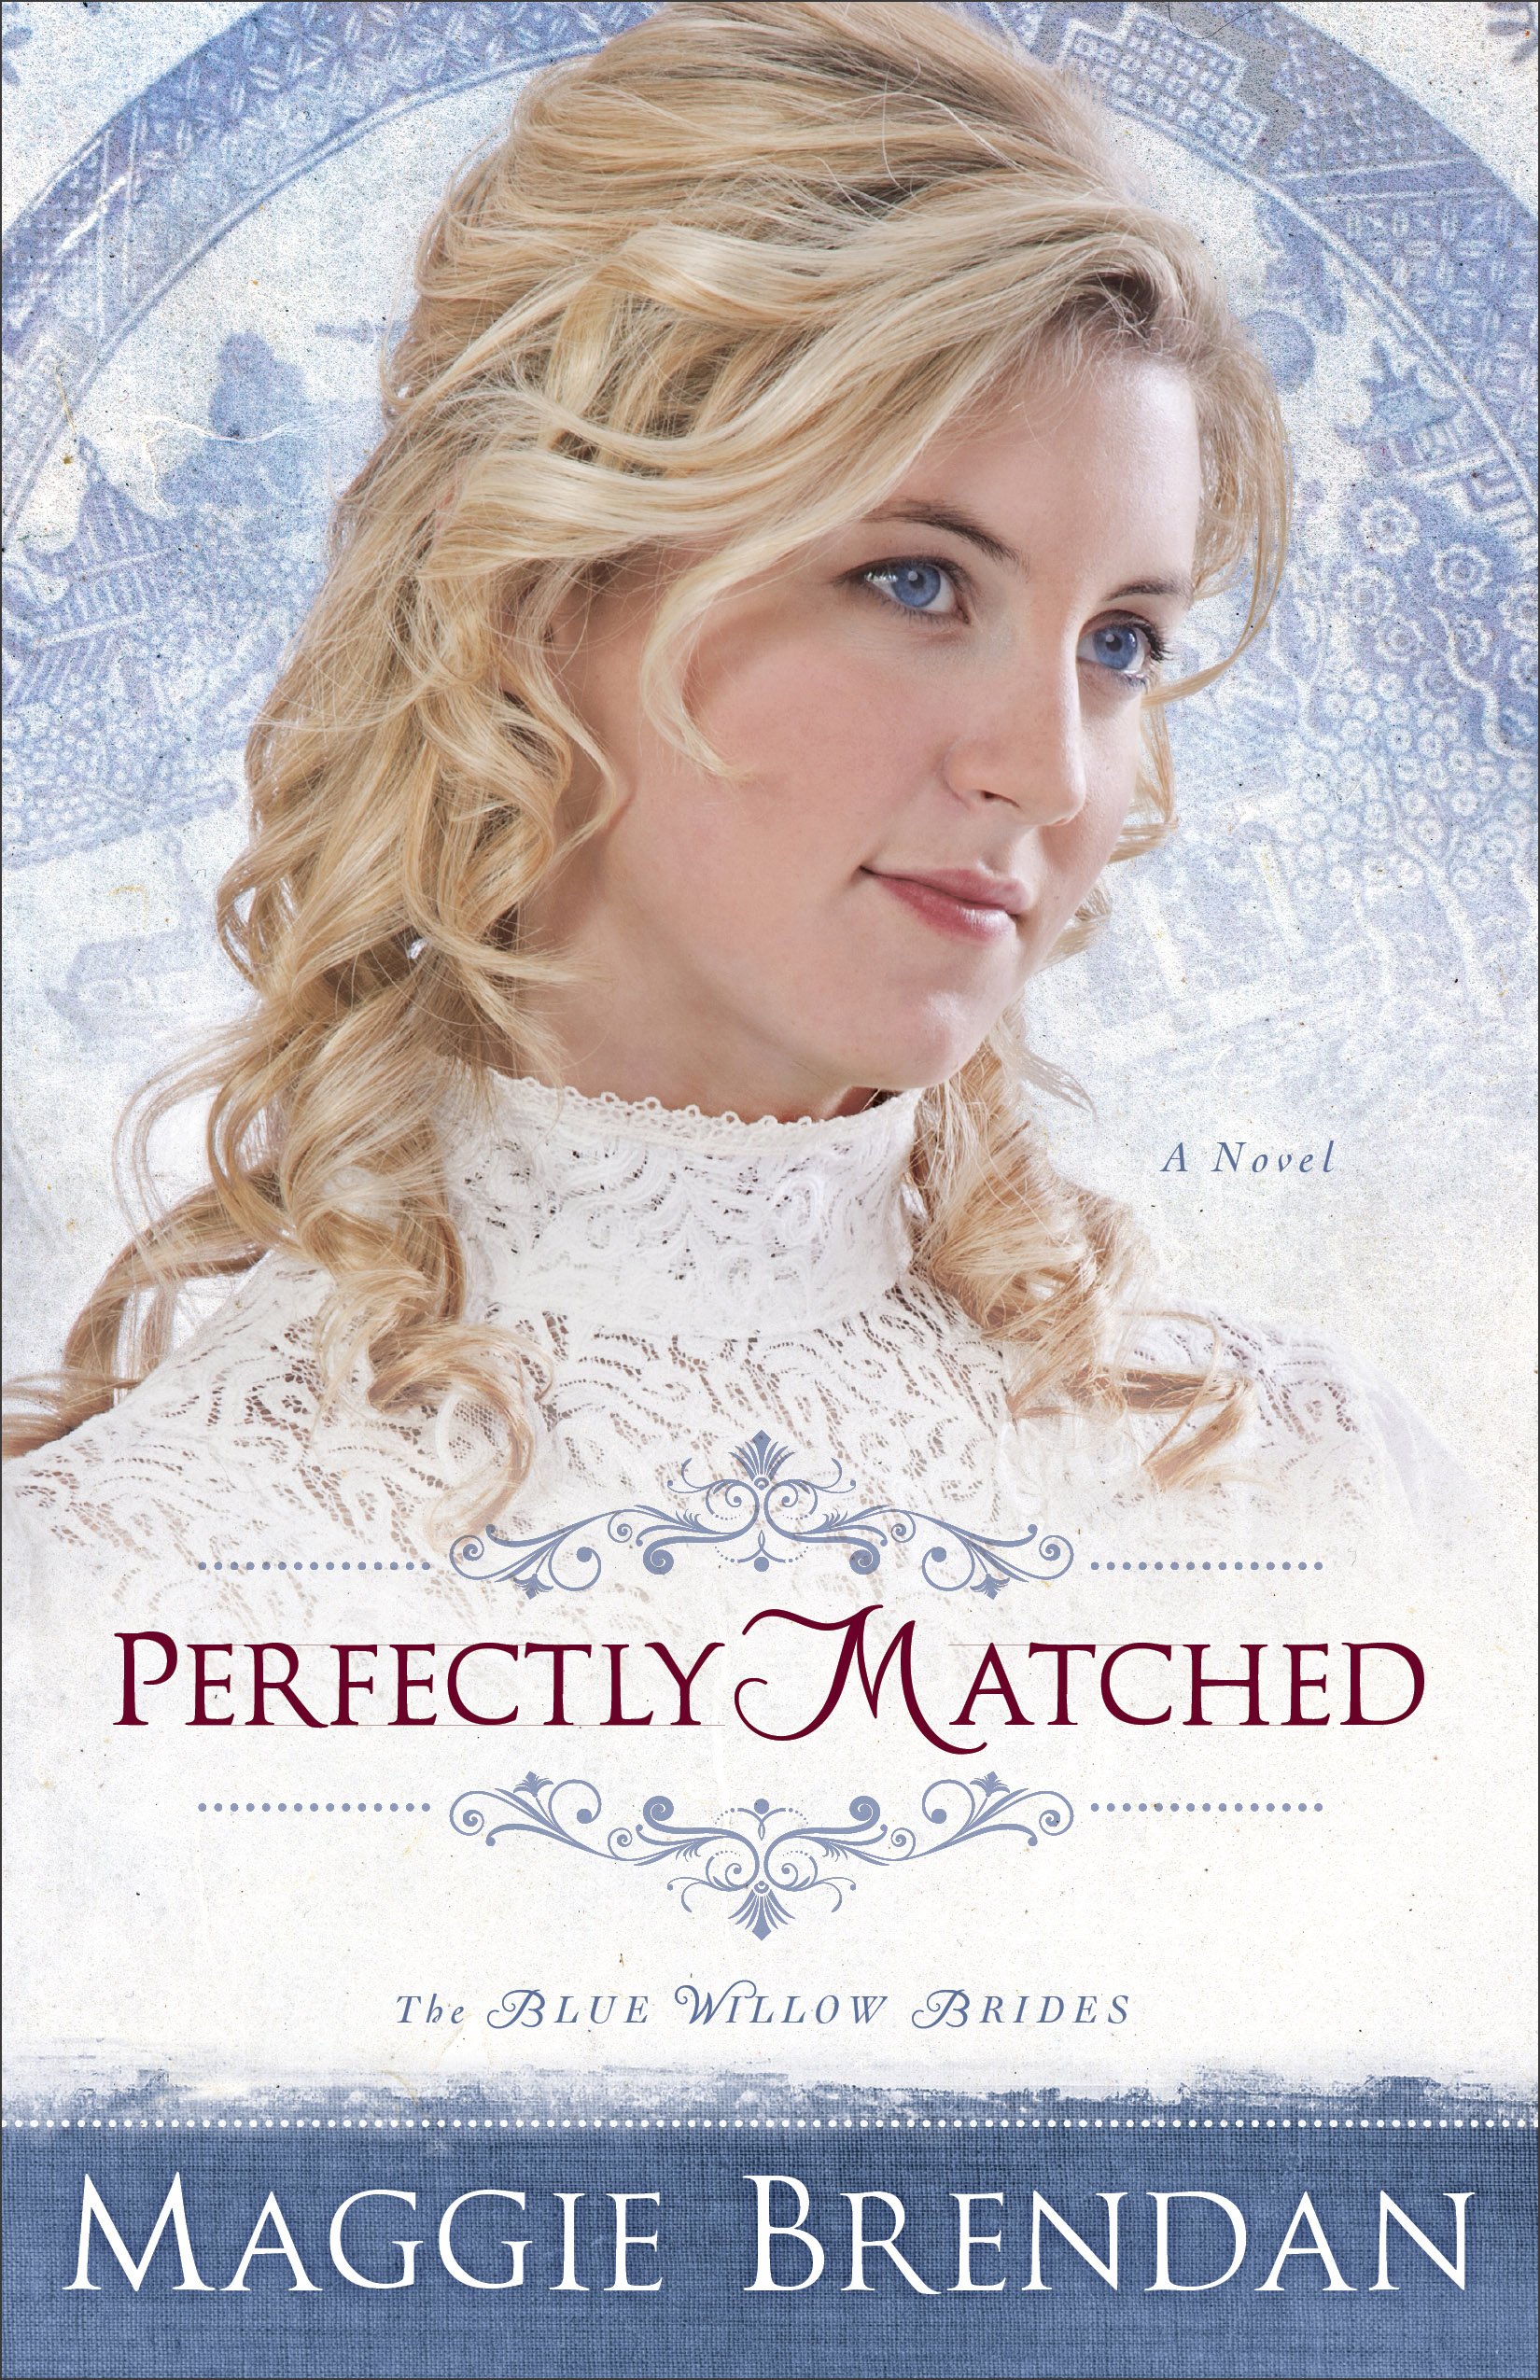 Perfectly Matched by Maggie Brendan